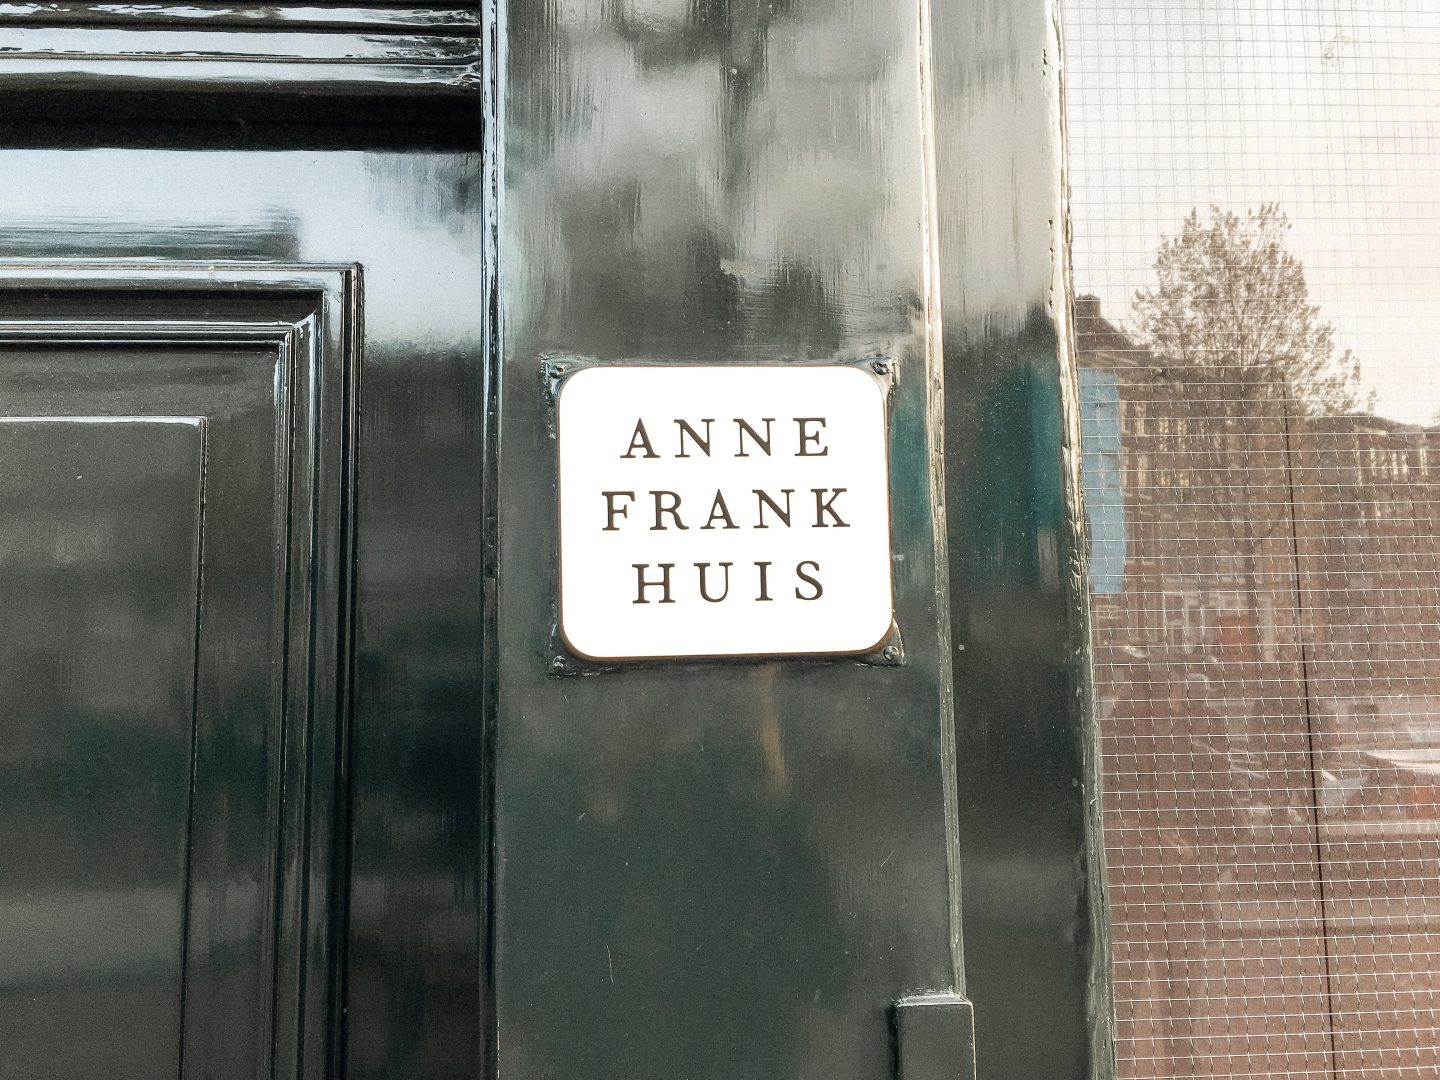 Anne Frank House Amsterdam sign